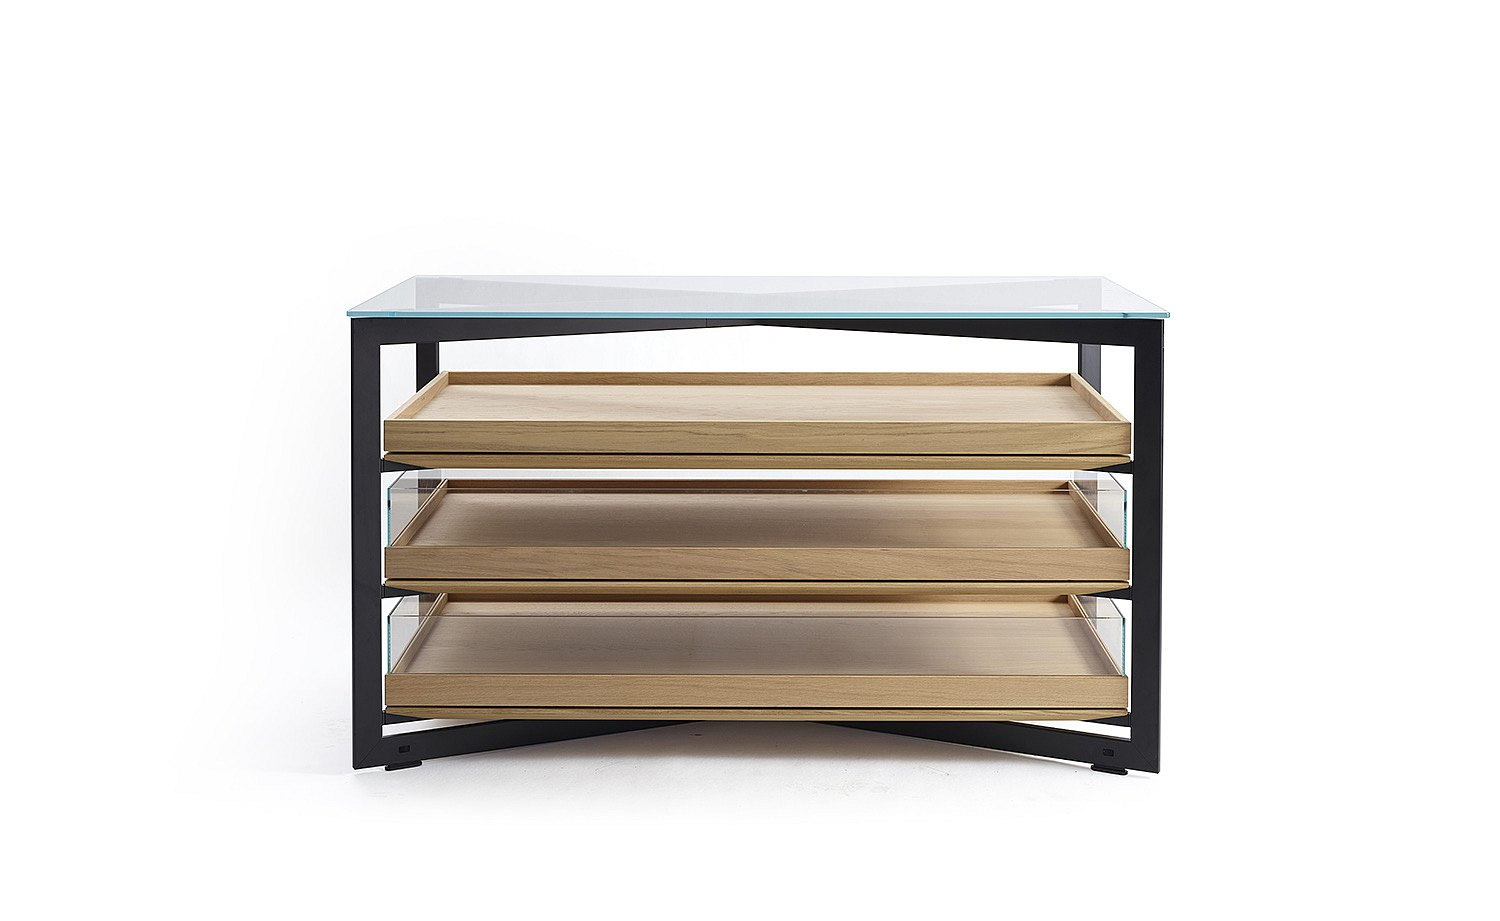 b Solitaire glass, 140 cm length with three wood pull-out trays, two with glass sides: frontal view